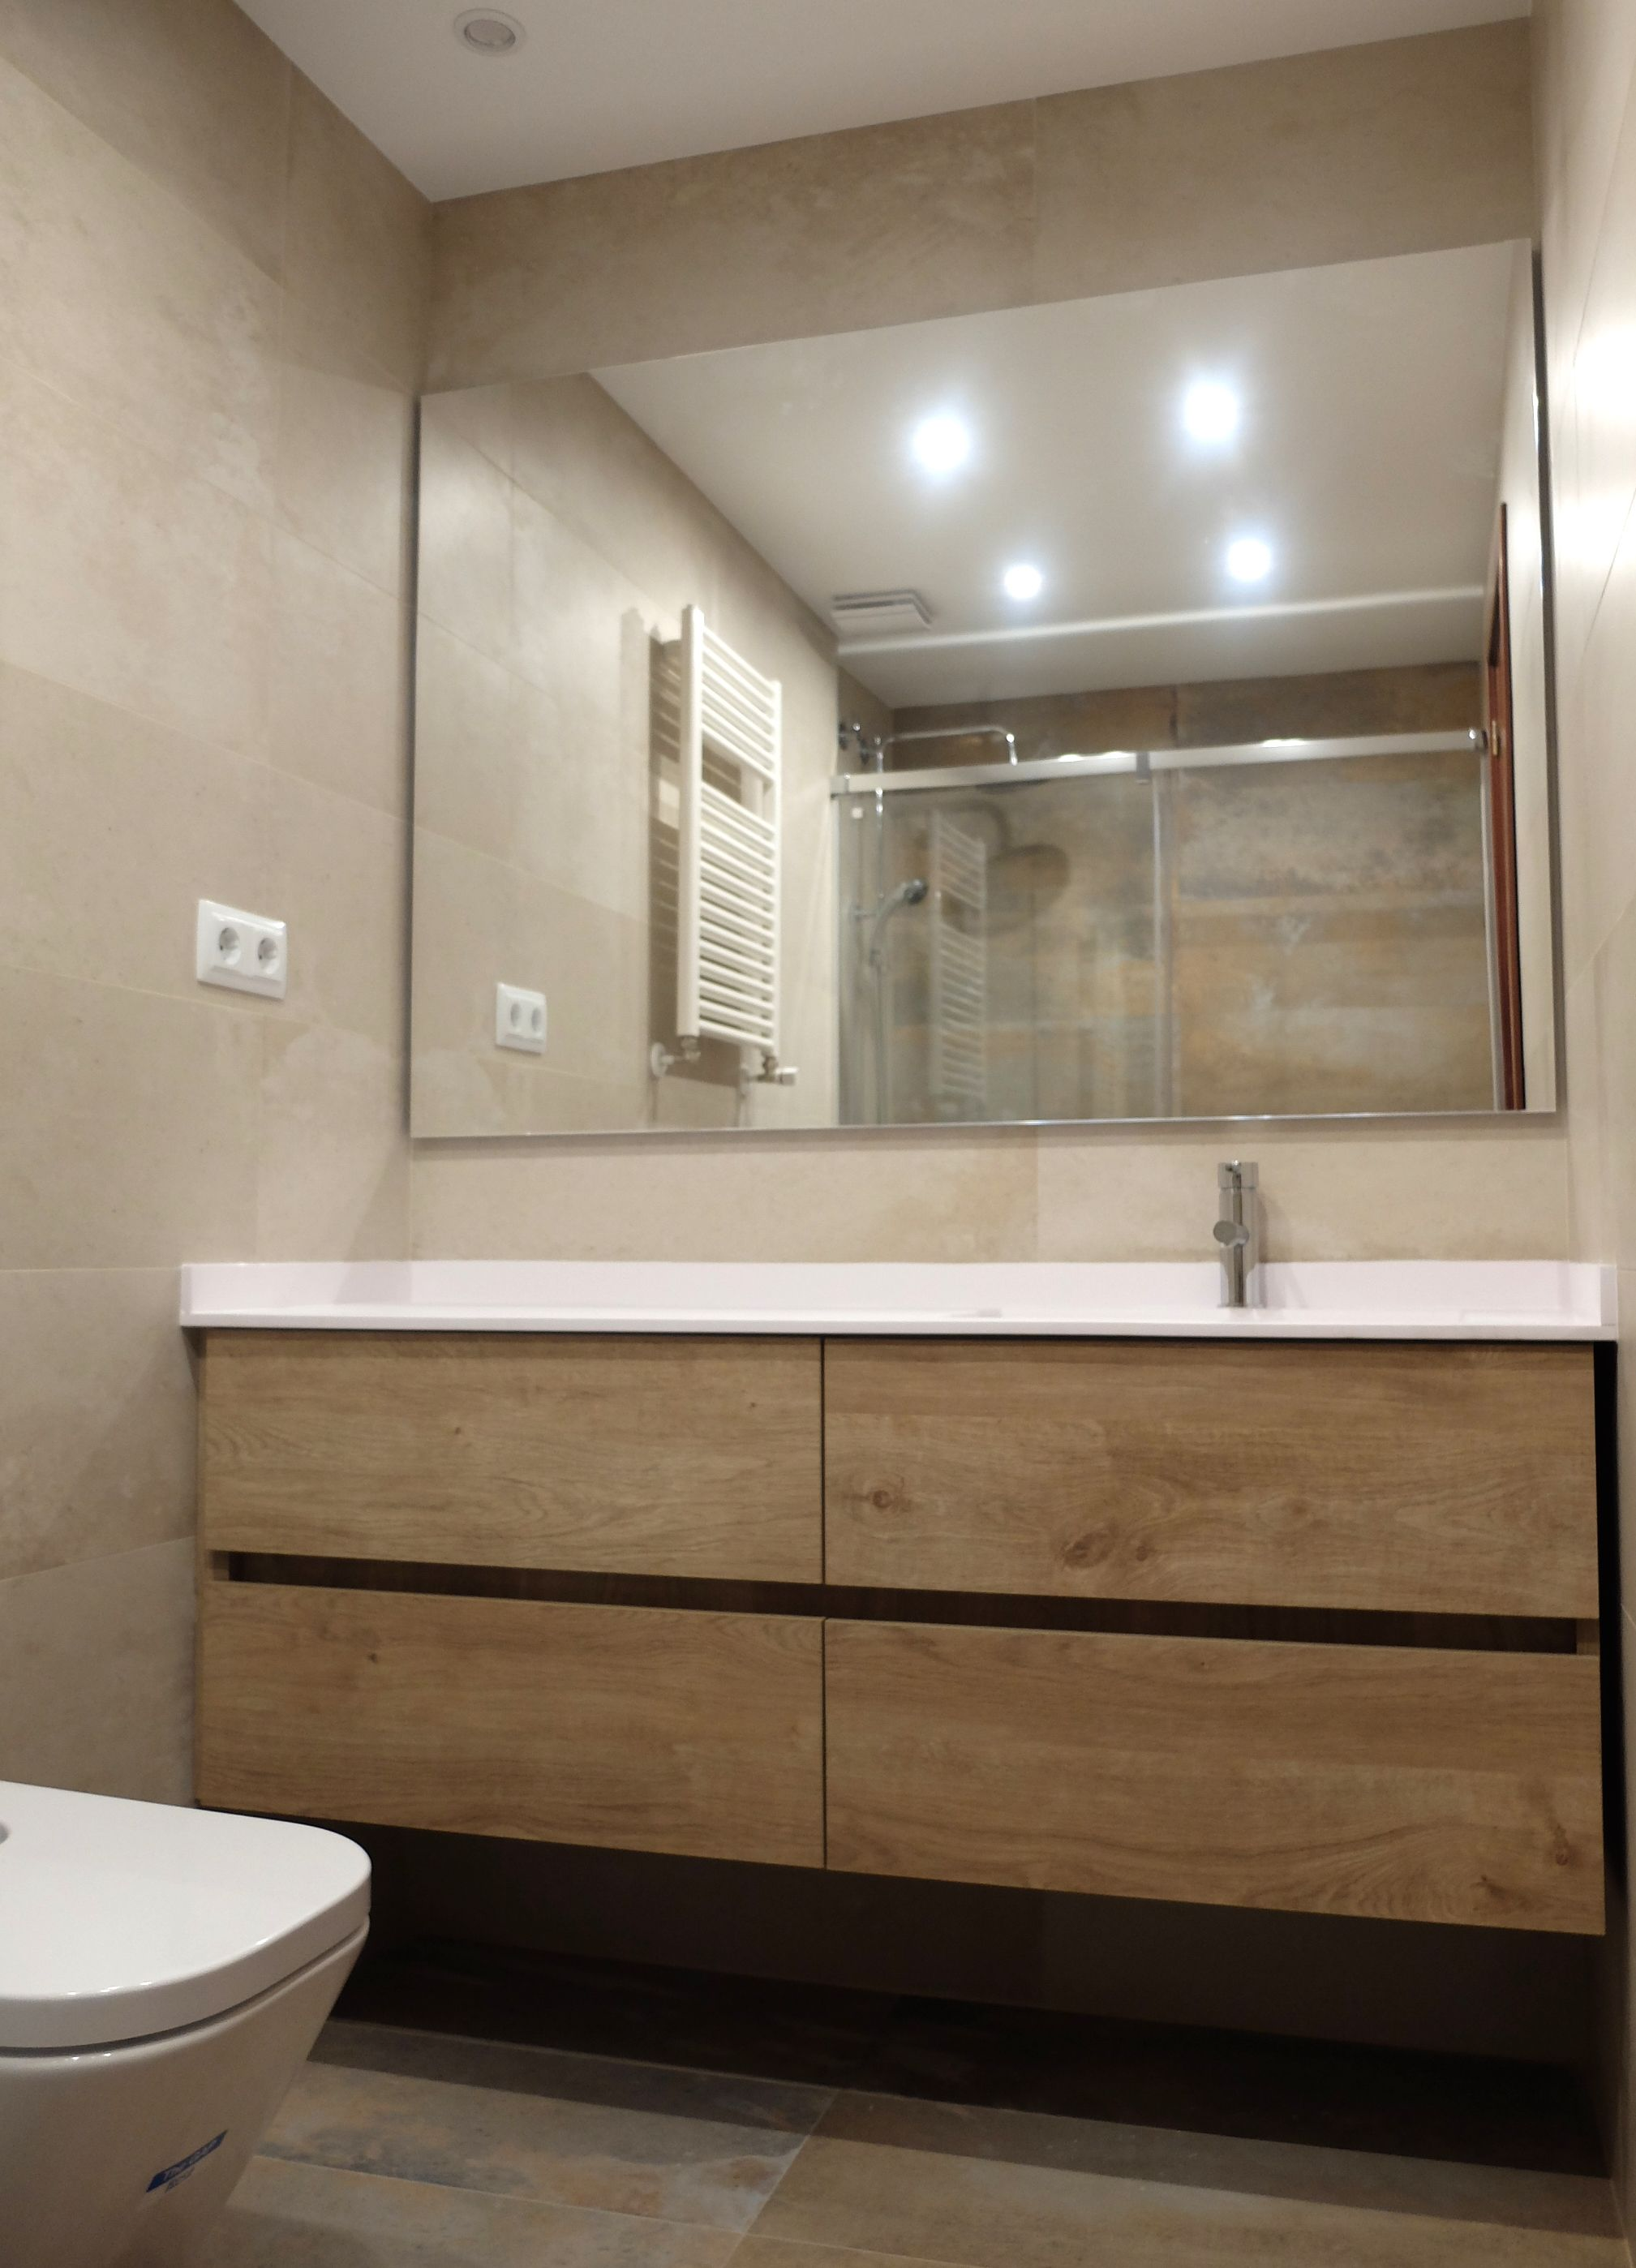 Muebles Para Wc - Reforma De Ba O En Barcelona Con Mueble Laminado Imitaci N Madera [mjhdah]http://1.bp.blogspot.com/-bjUA_qUhfGM/VDbGfI8xEfI/AAAAAAAAGJo/gXuOGDpKNn4/s1600/simple-floating-shelves-and-toilet-bowls-bathroom-storage-ideas-for-small-space.jpg